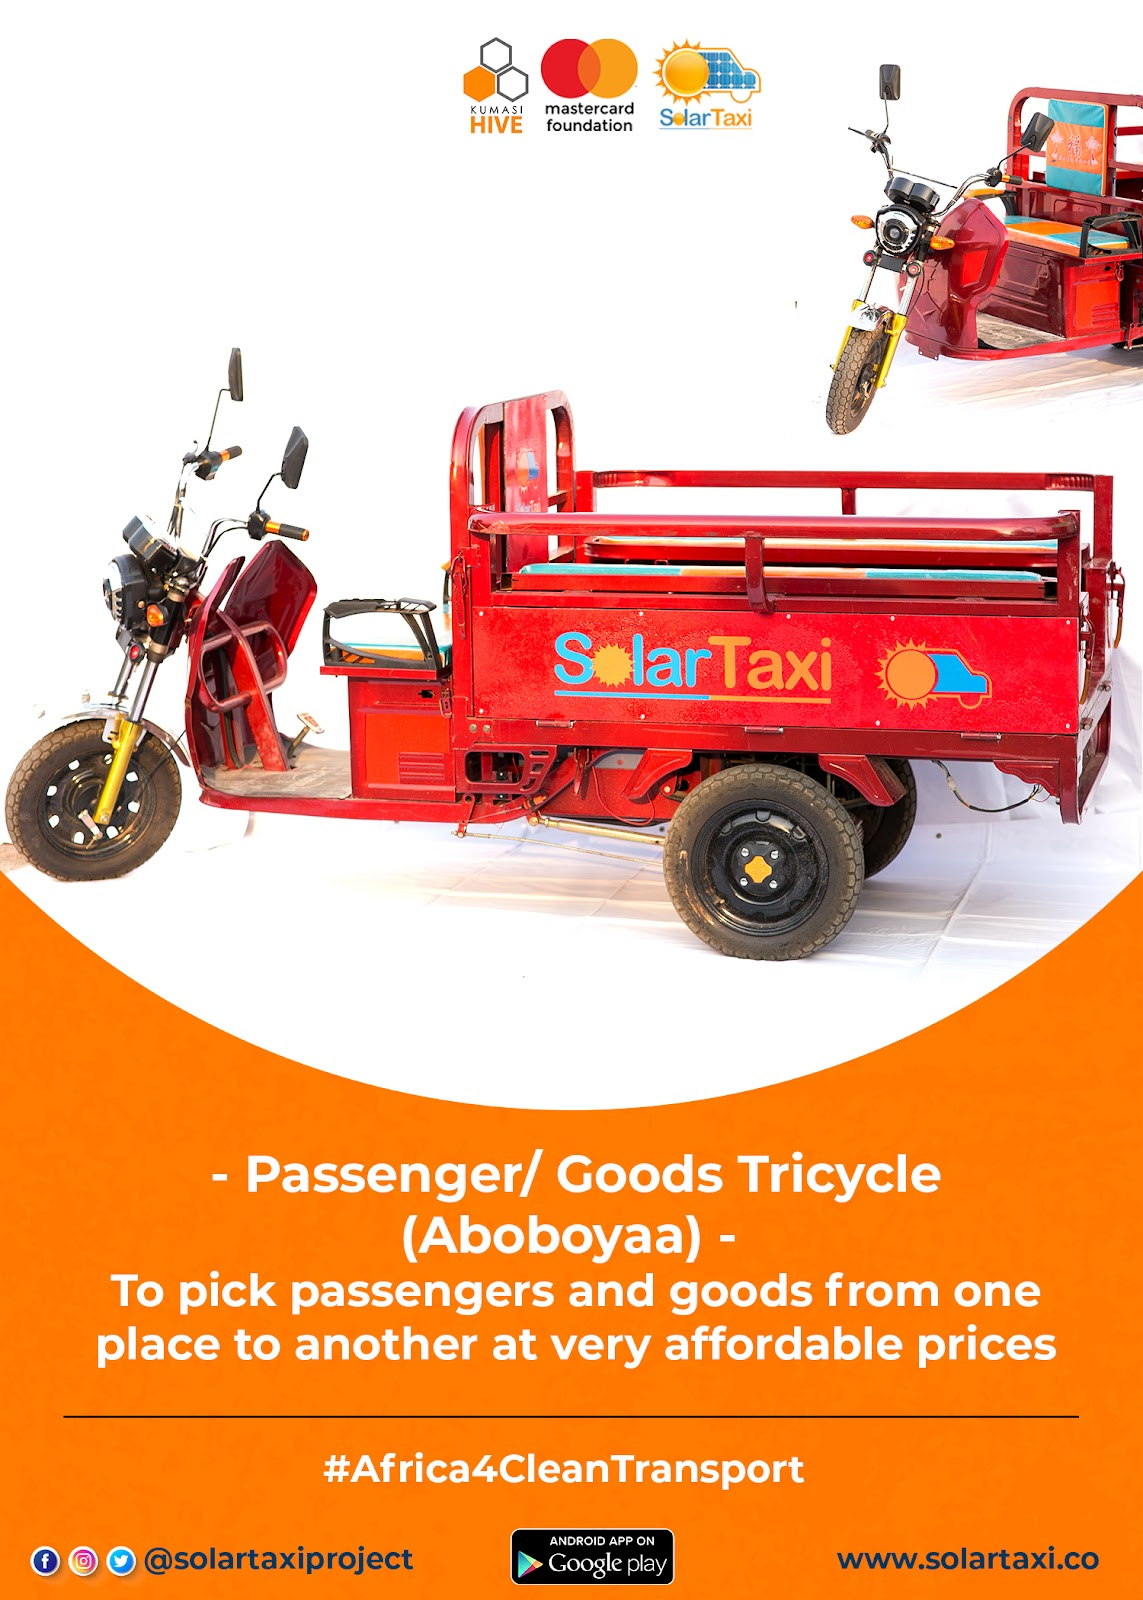 Kumasi Hive and Mastercard Foundation Passenger Tricycle image for SolarTaxi on gharage